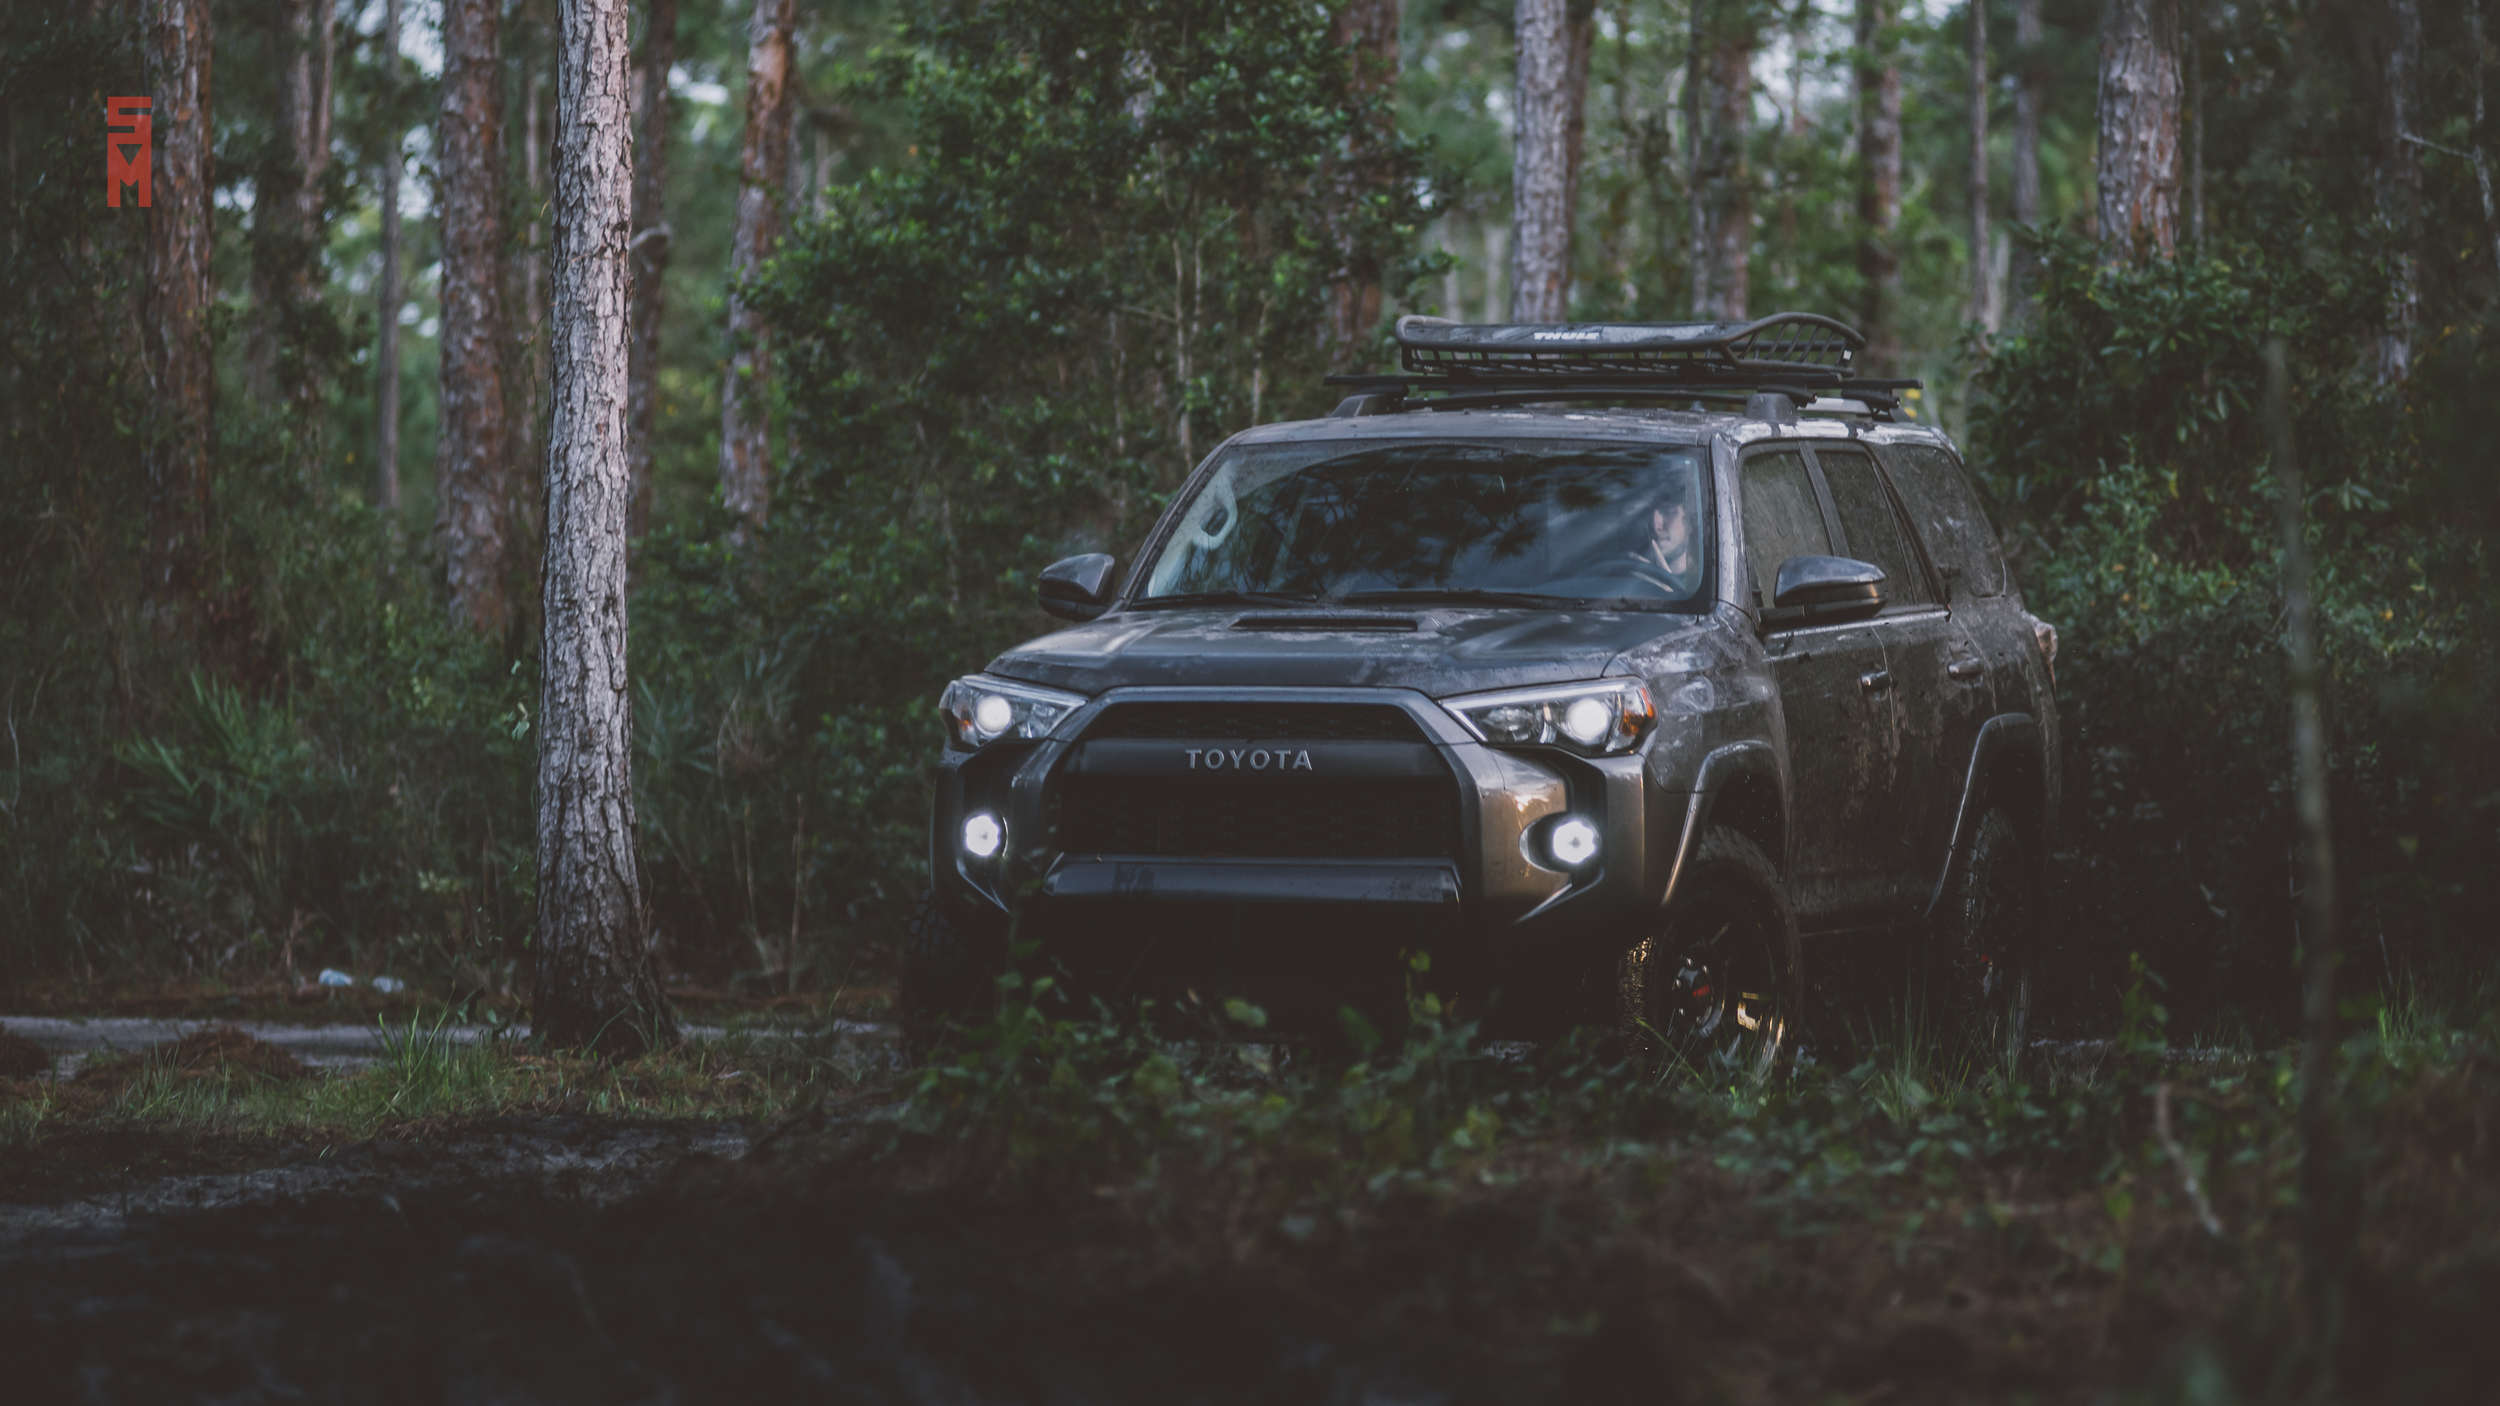 Epic Toyota 4Runner TRD Pro Video – Expedition Georgia